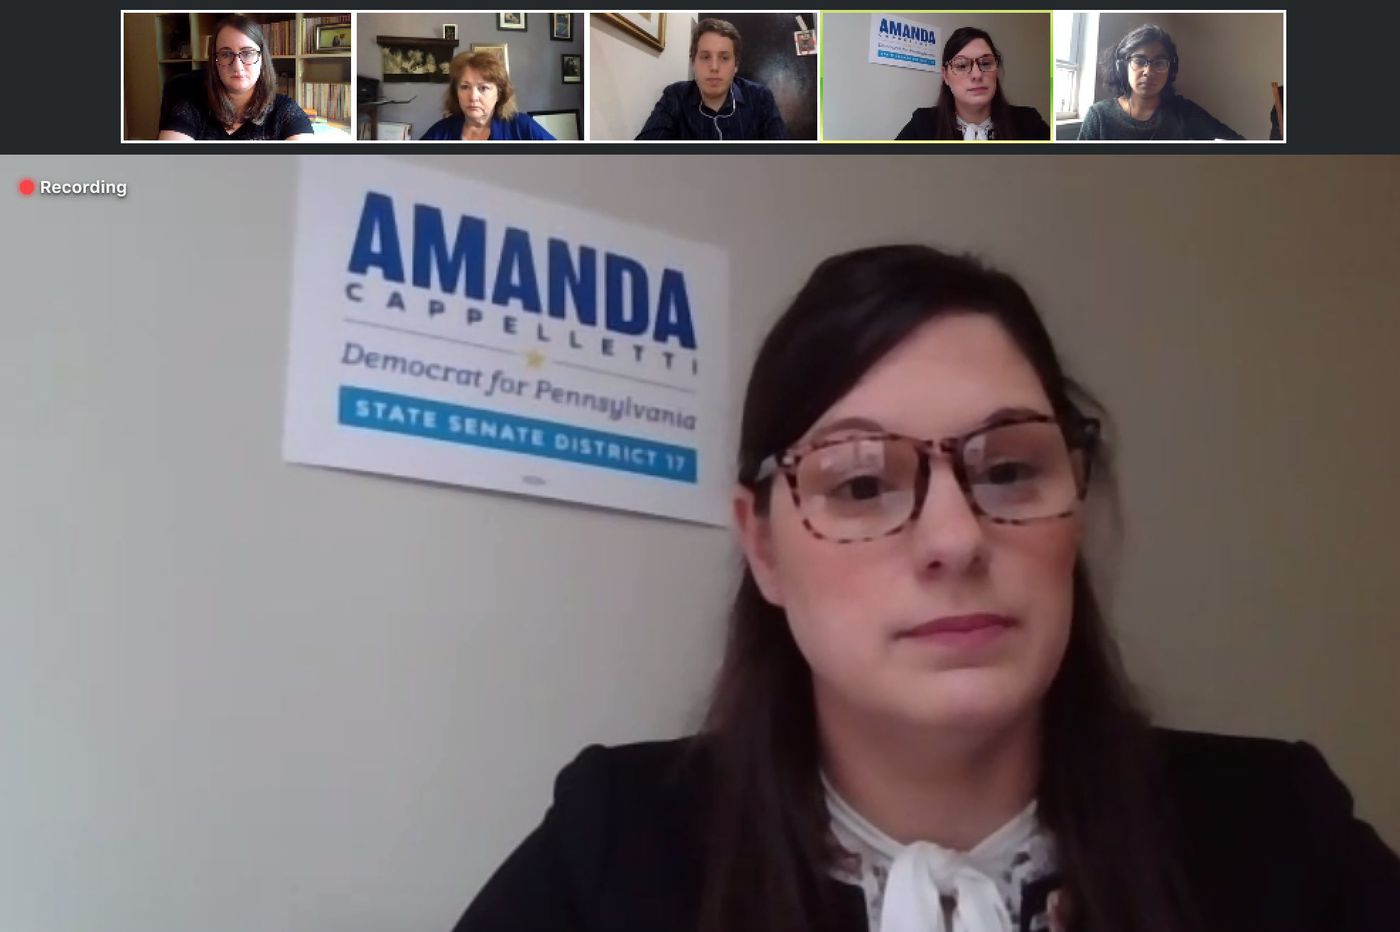 Amanda Cappelletti is a fresh opportunity for a troubled Pa. Senate seat | Endorsement